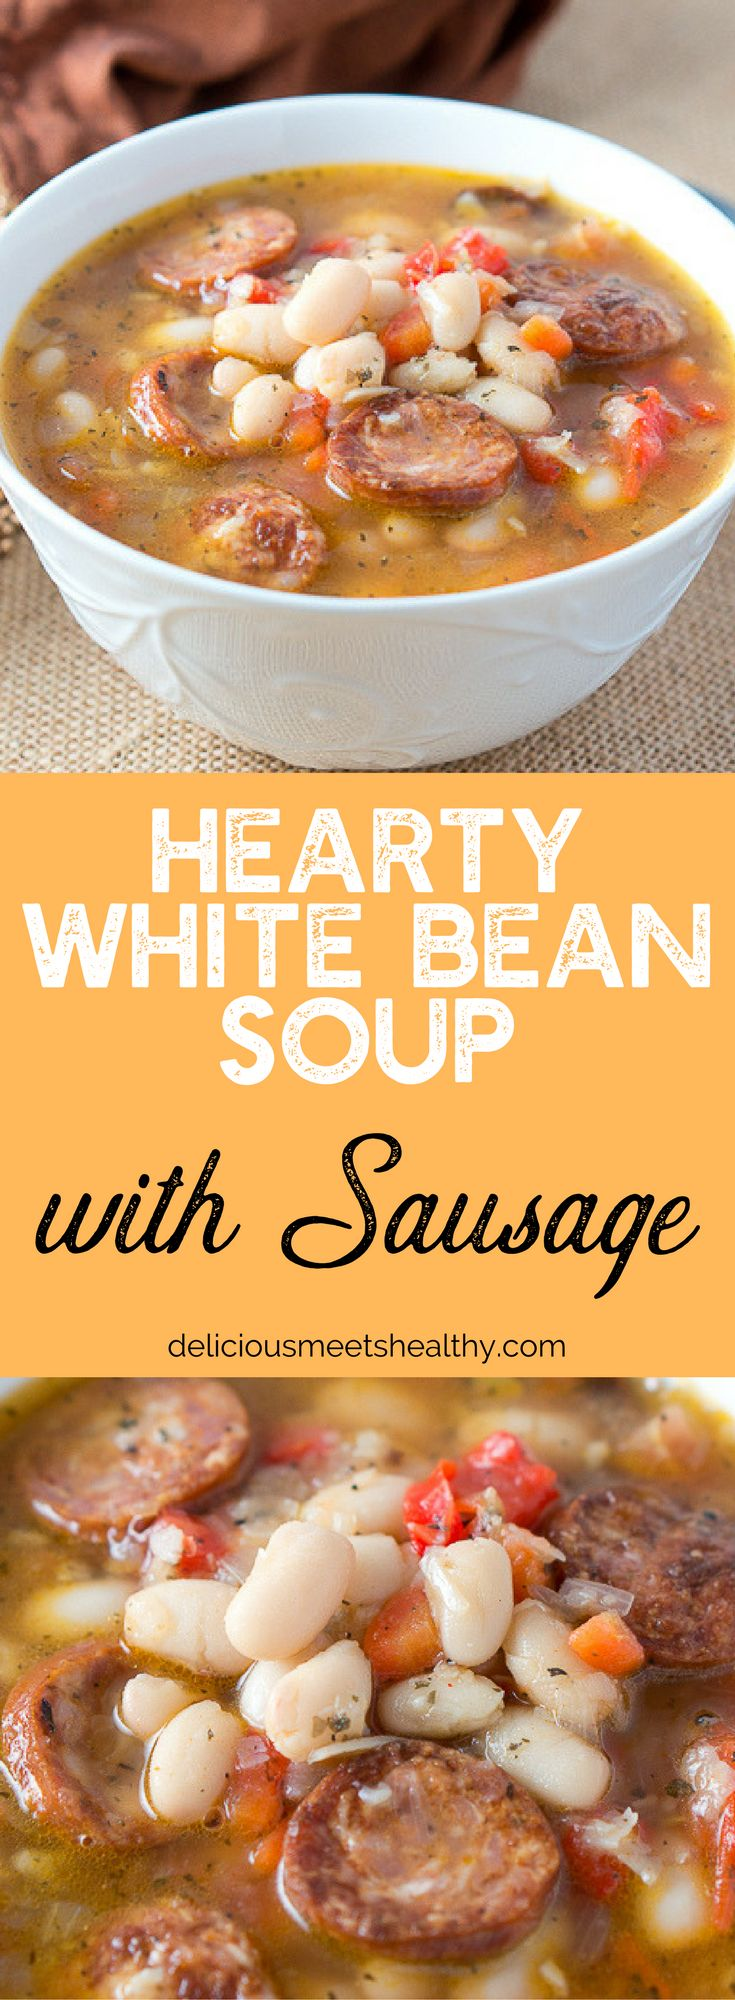 Warm and Hearty White Bean Soup with Sausage - perfect for a cozy cold winter day. This soup has an amazing flavor and is so delicious!!